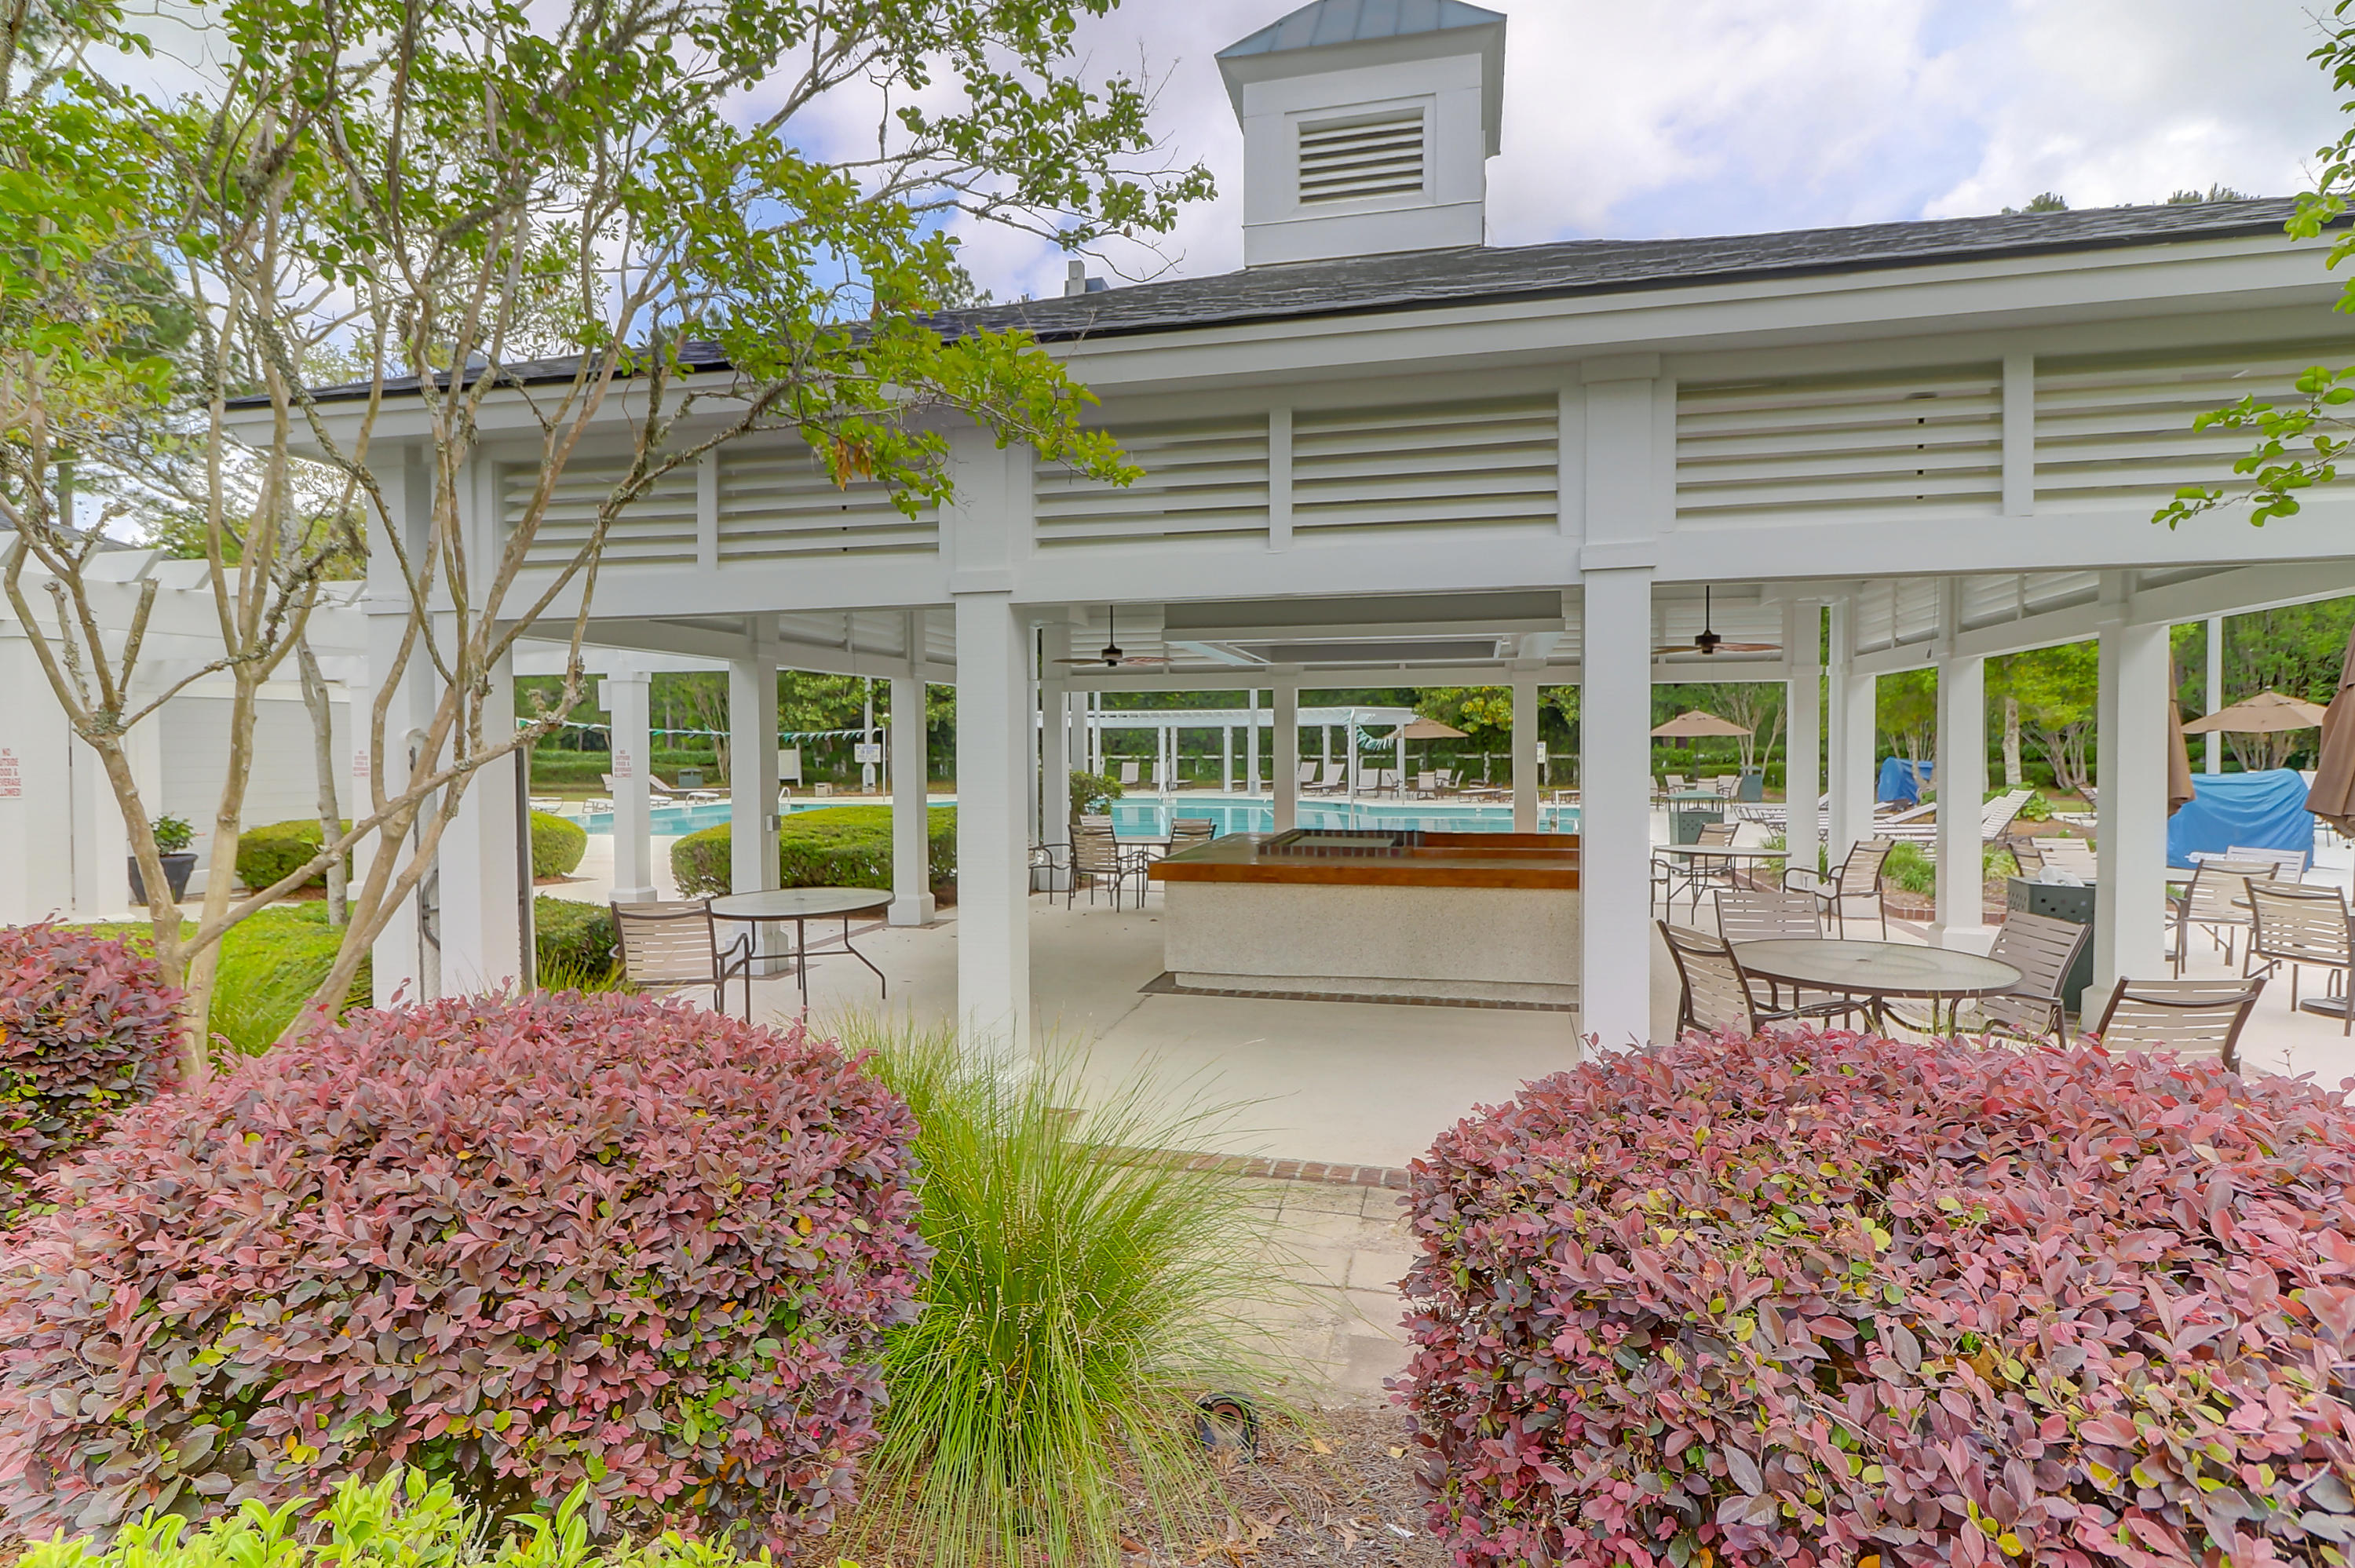 Coosaw Creek Country Club Homes For Sale - 8700 Fairway Woods, North Charleston, SC - 84